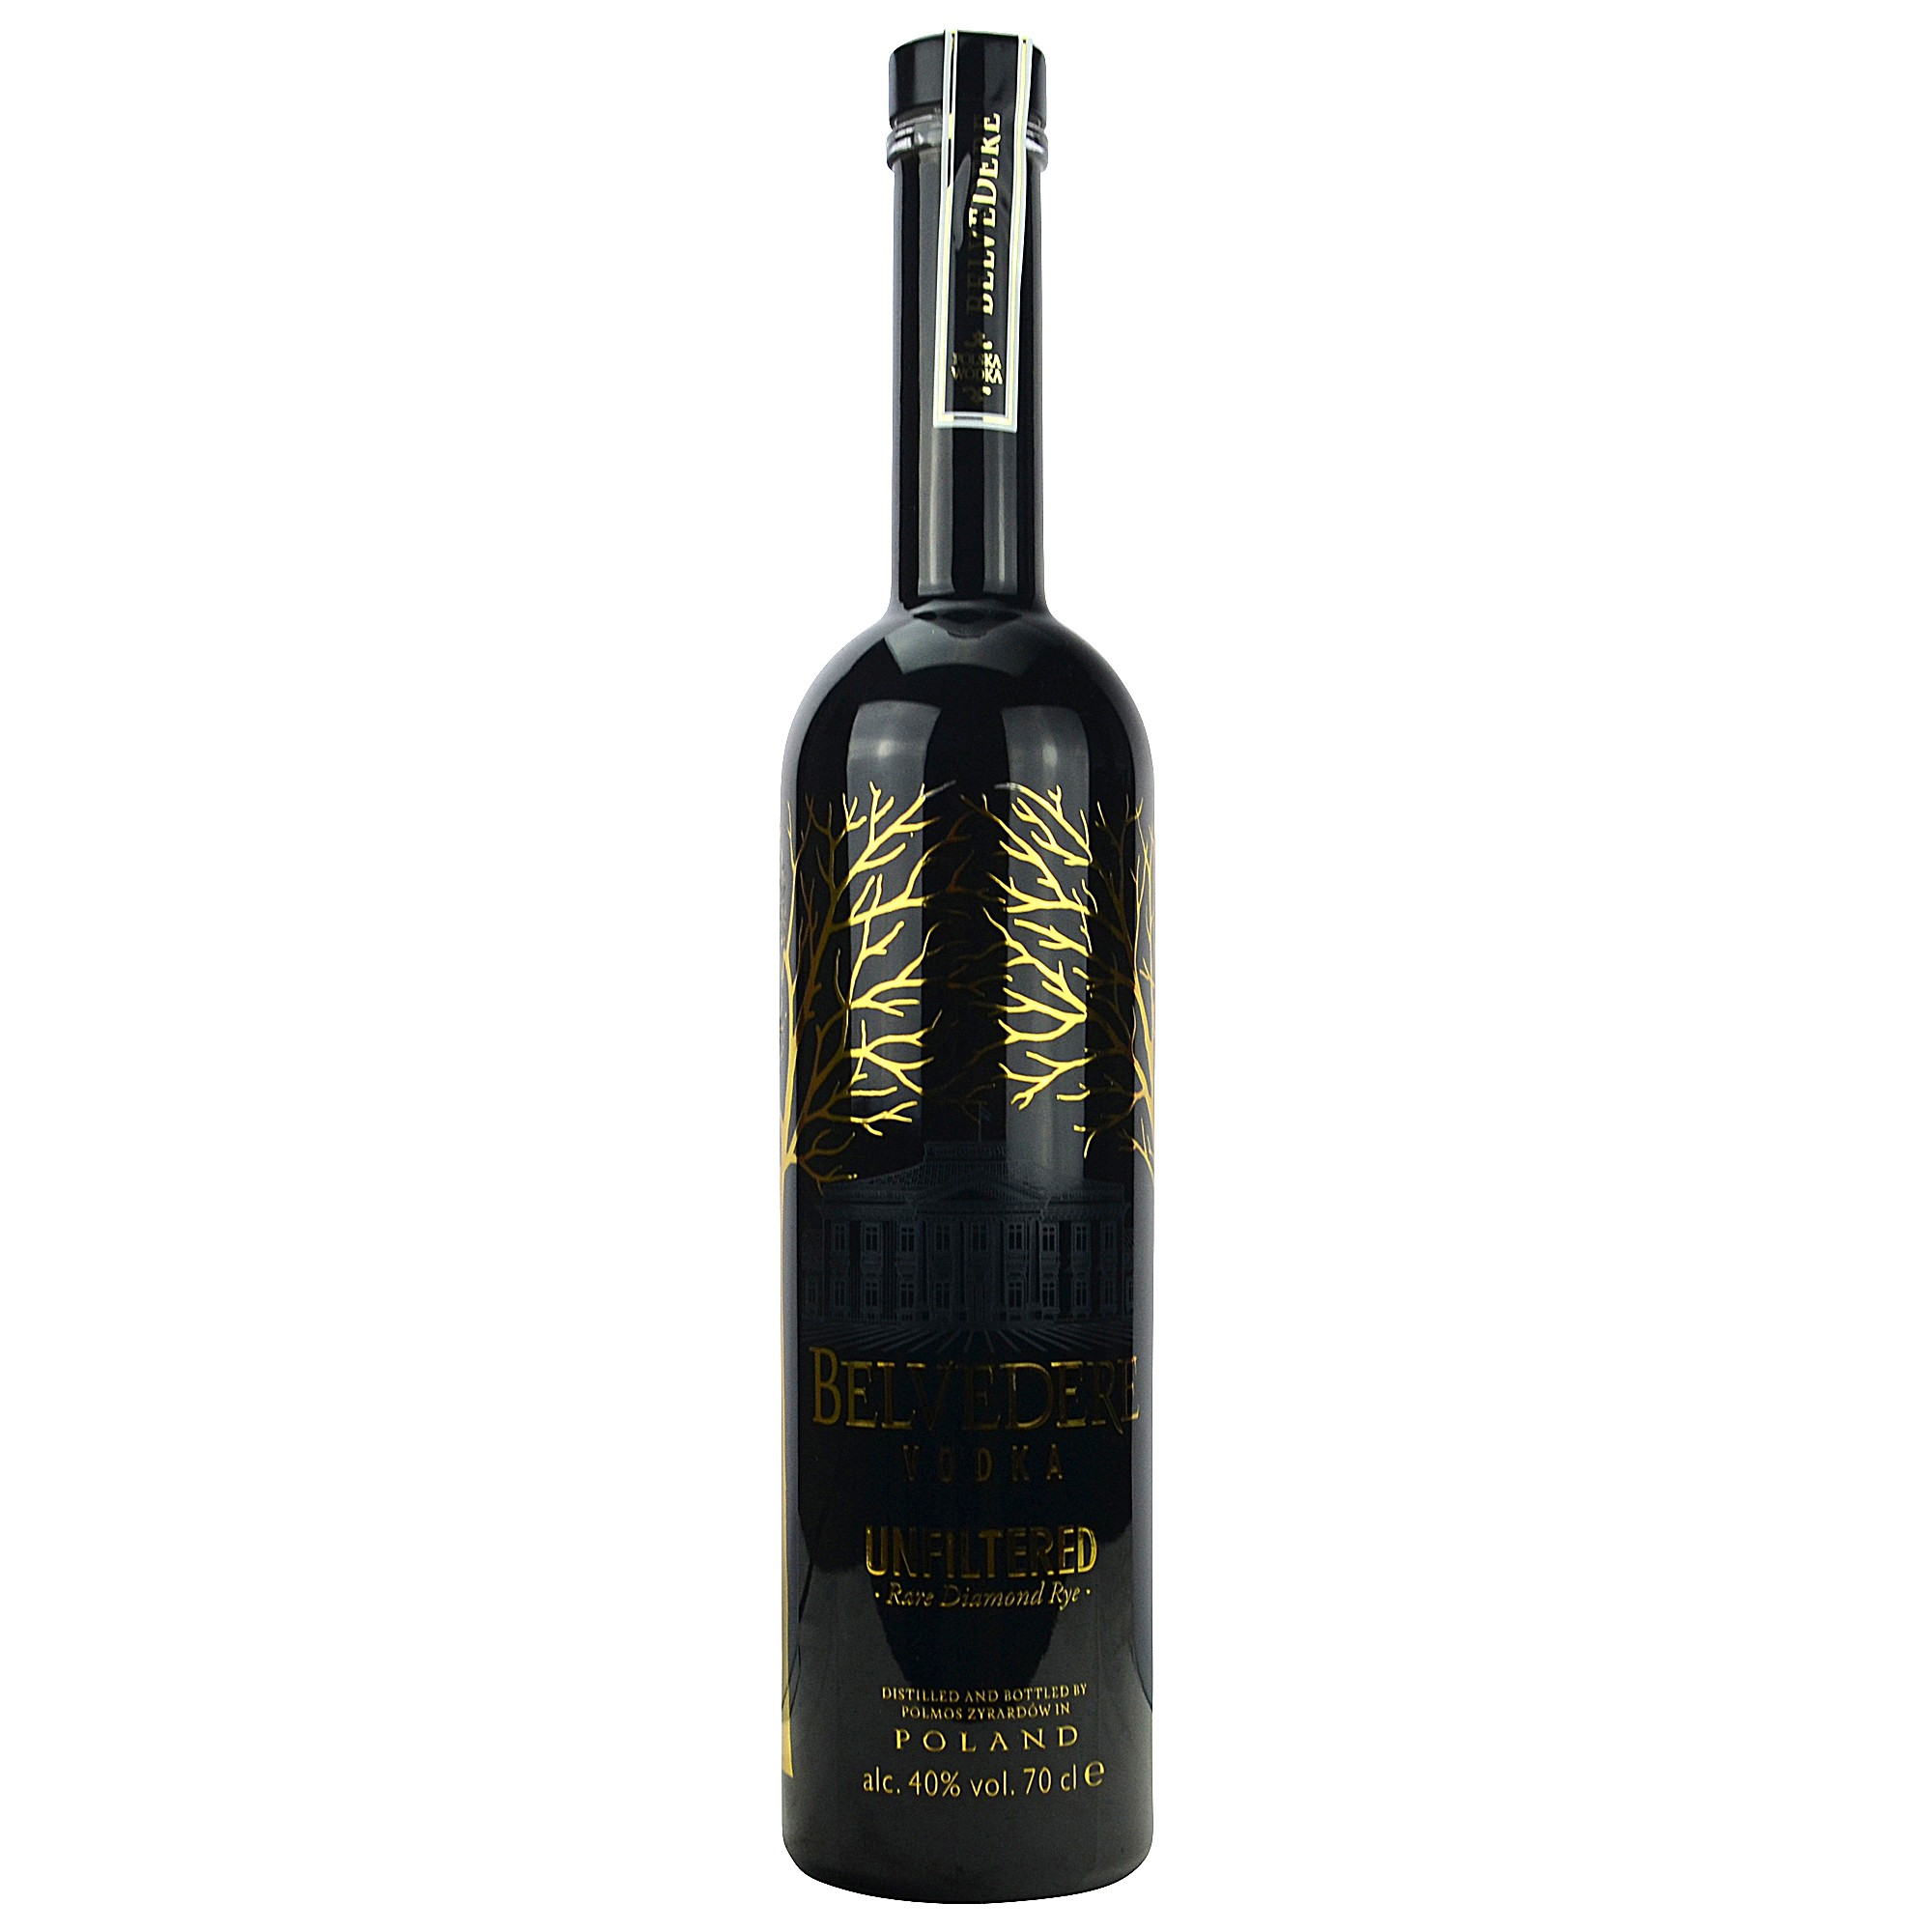 Belvedere Vodka Unfiltered Rare Diamond Rye (Wodka) (Polen)